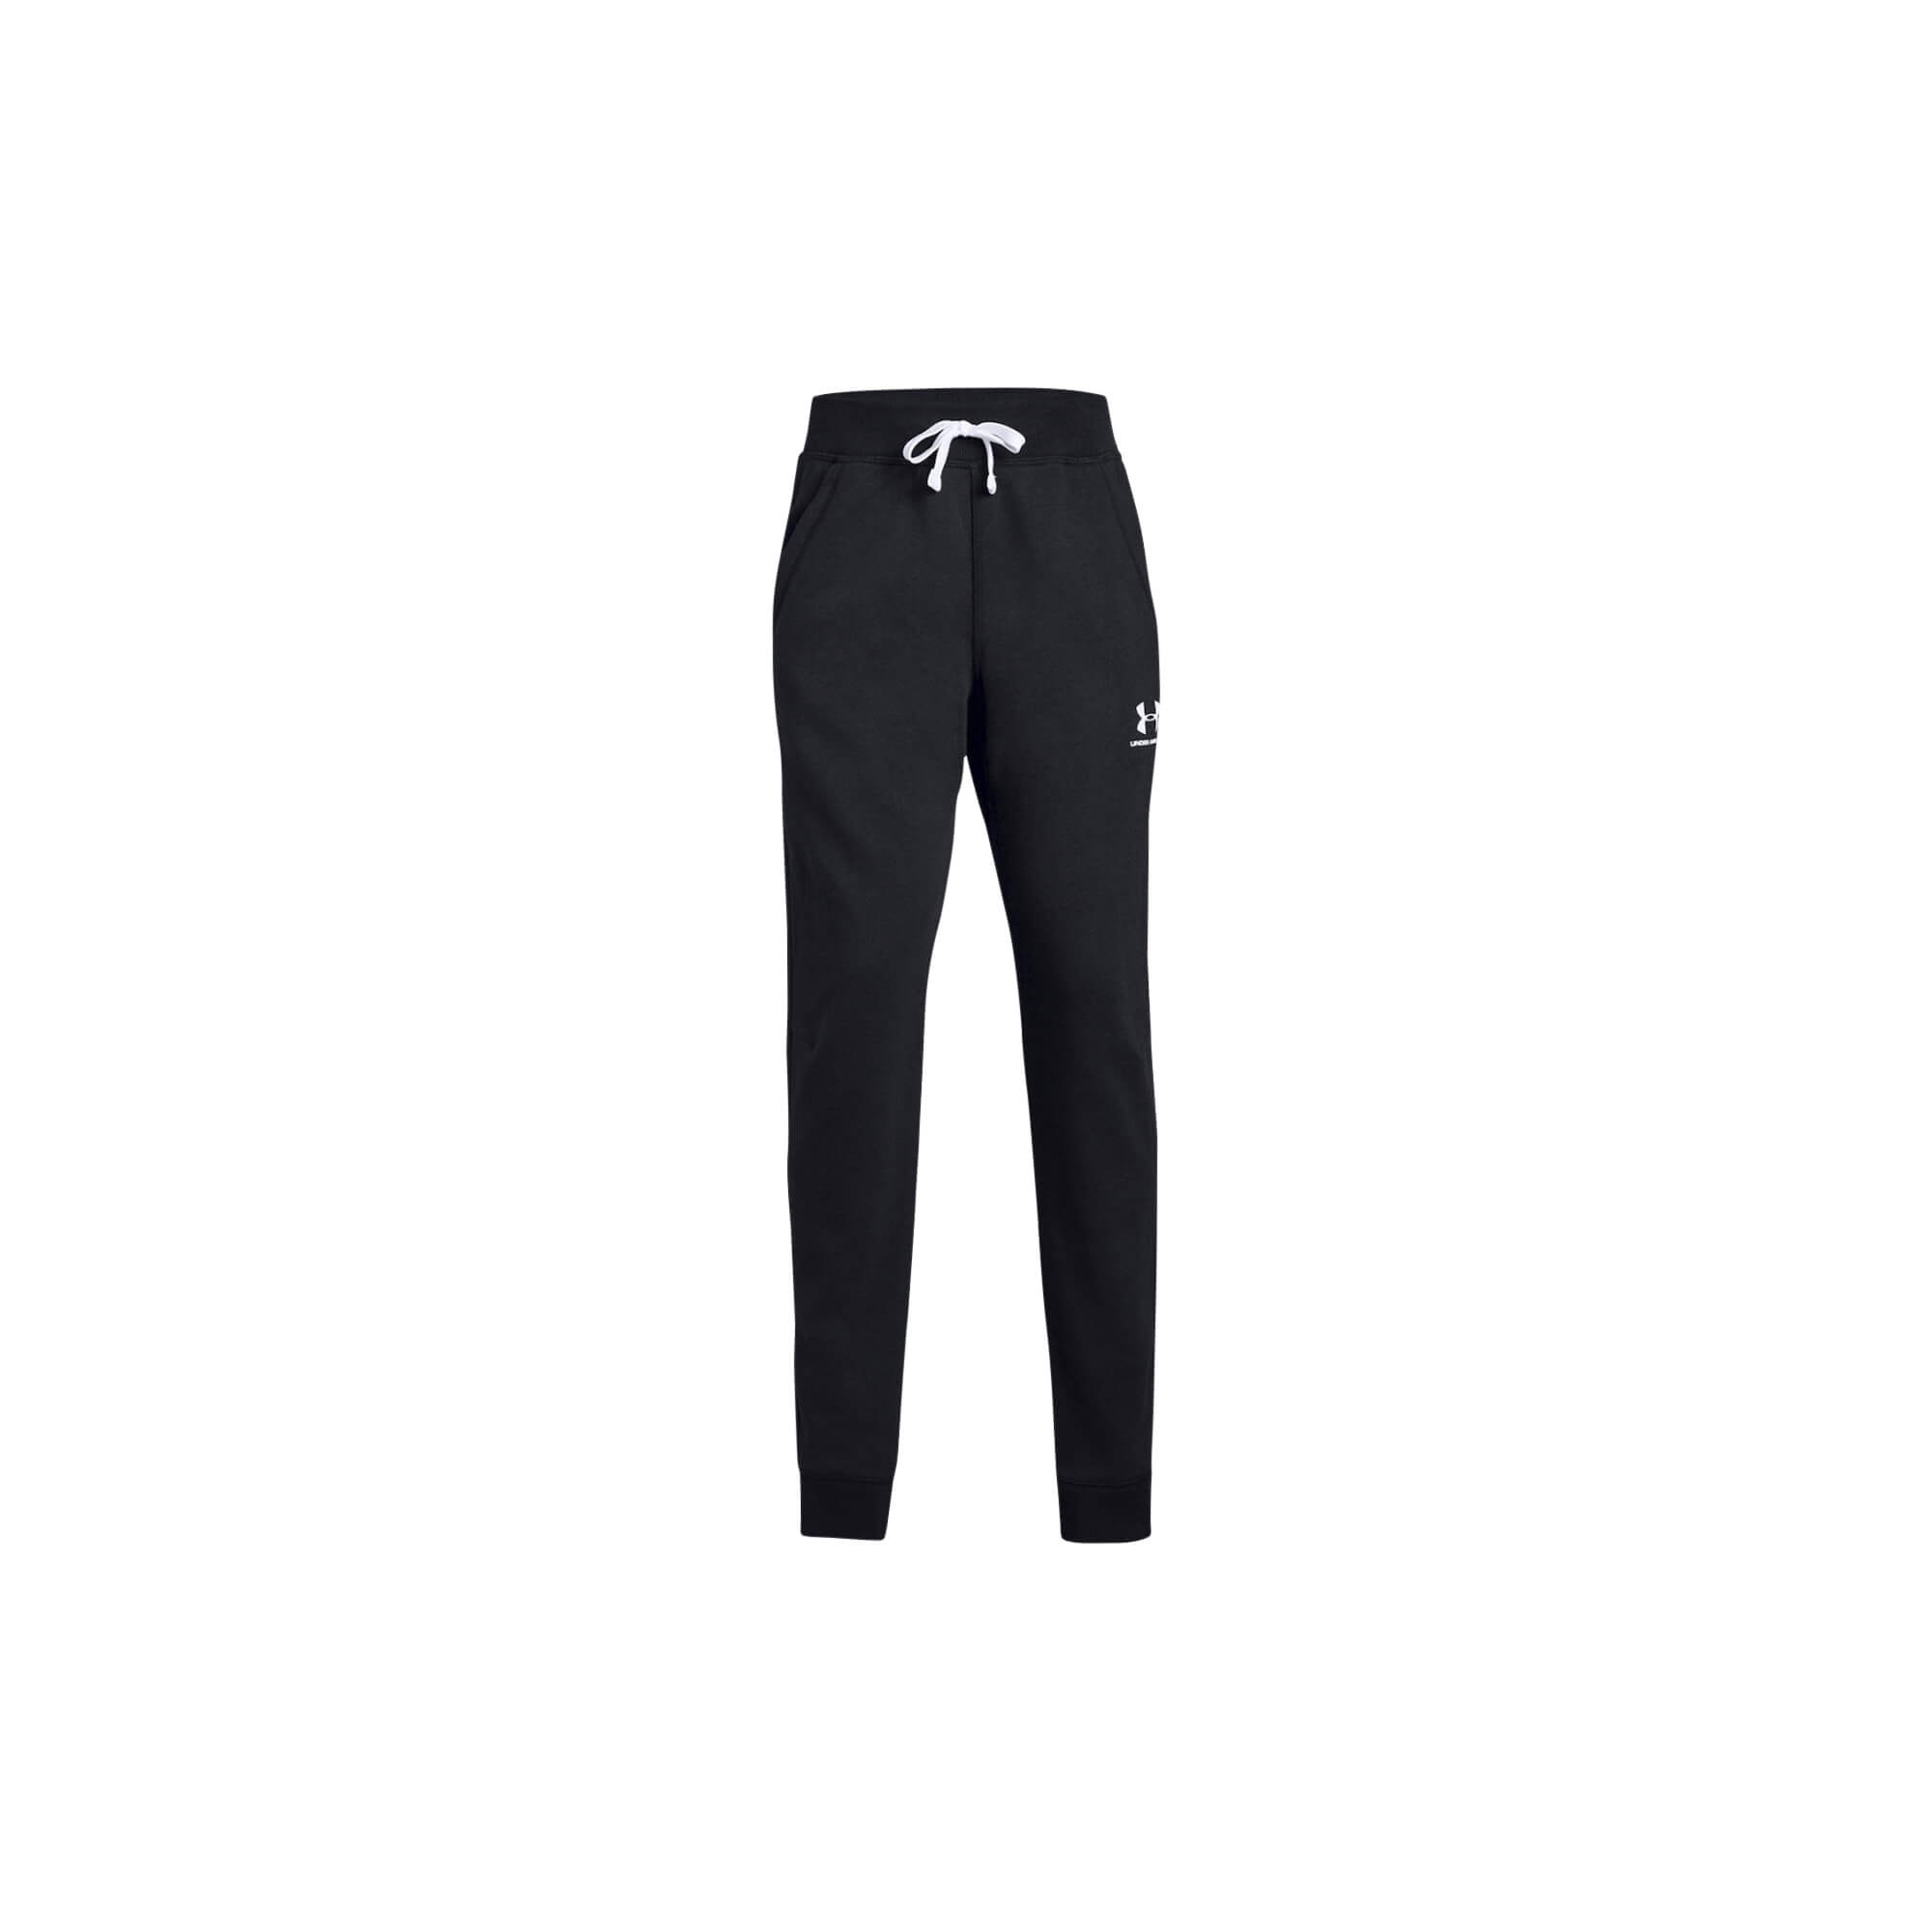 Fleece Jogger imagine produs